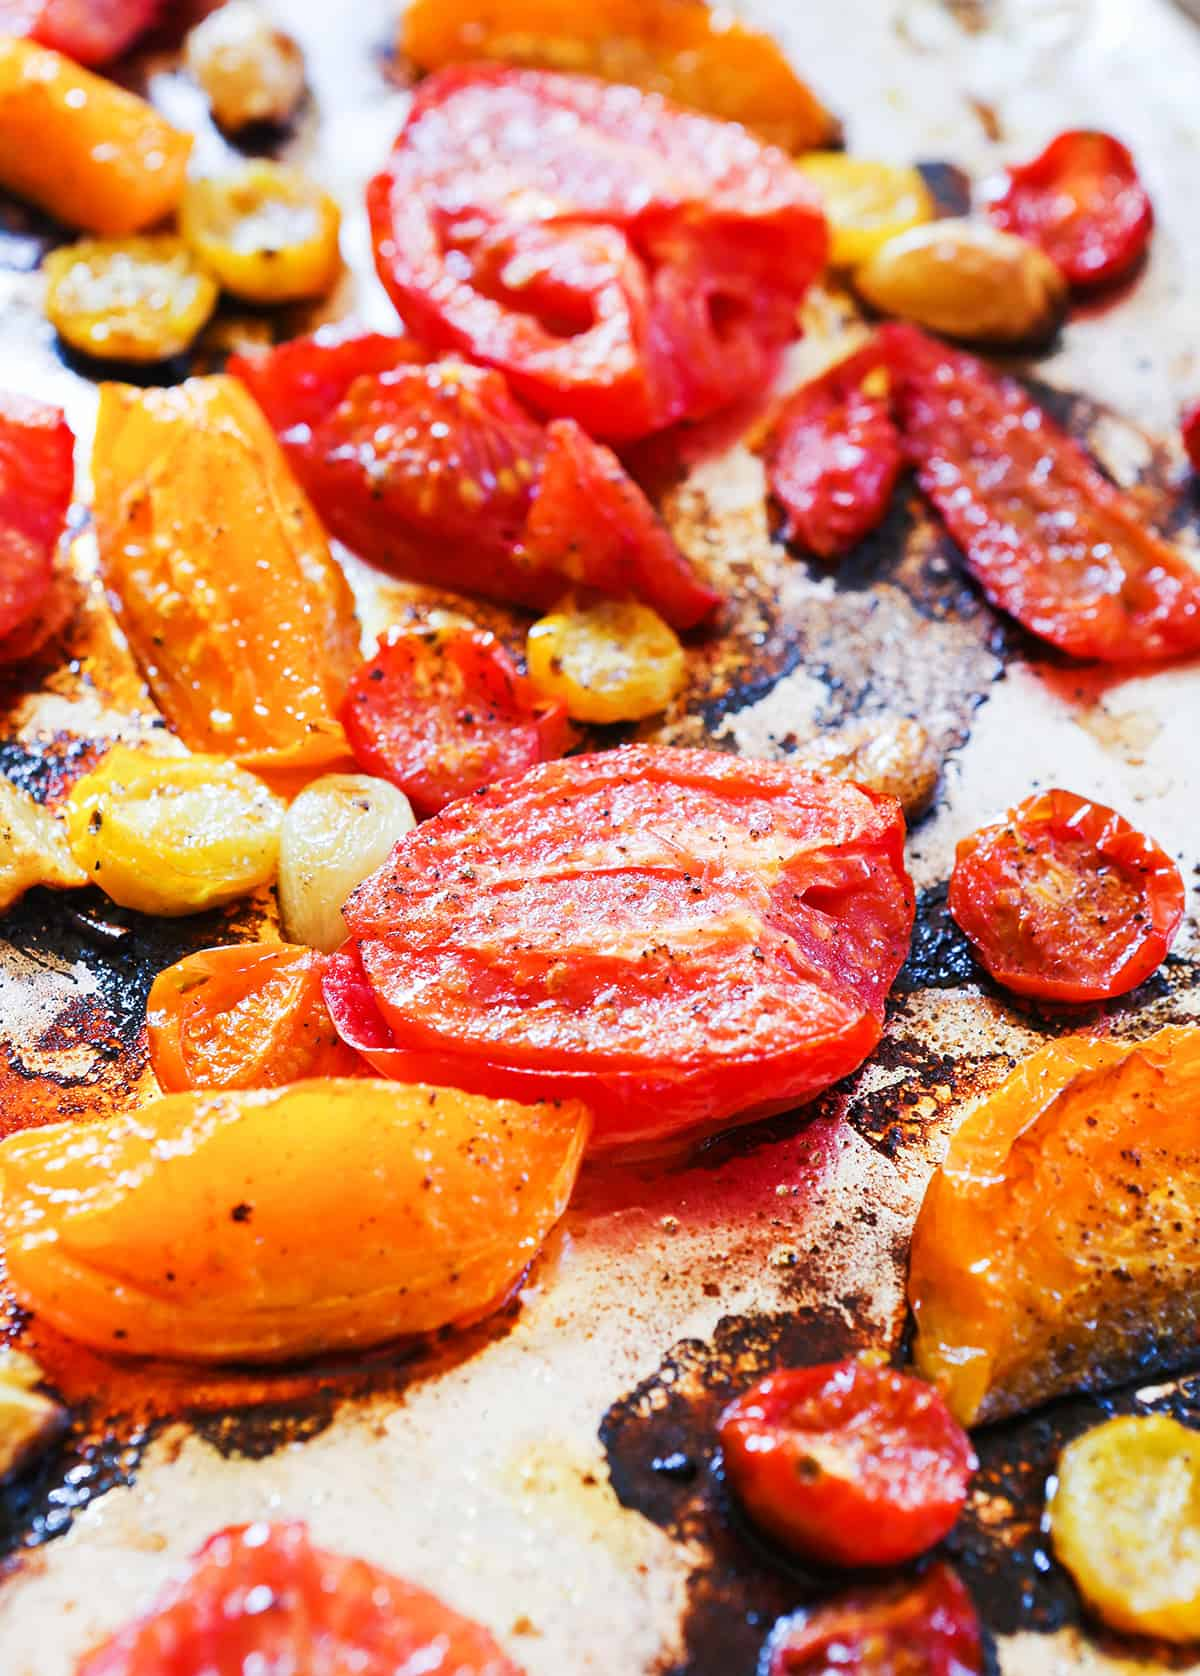 Roasted Roma and cherry tomatoes on a baking sheet.